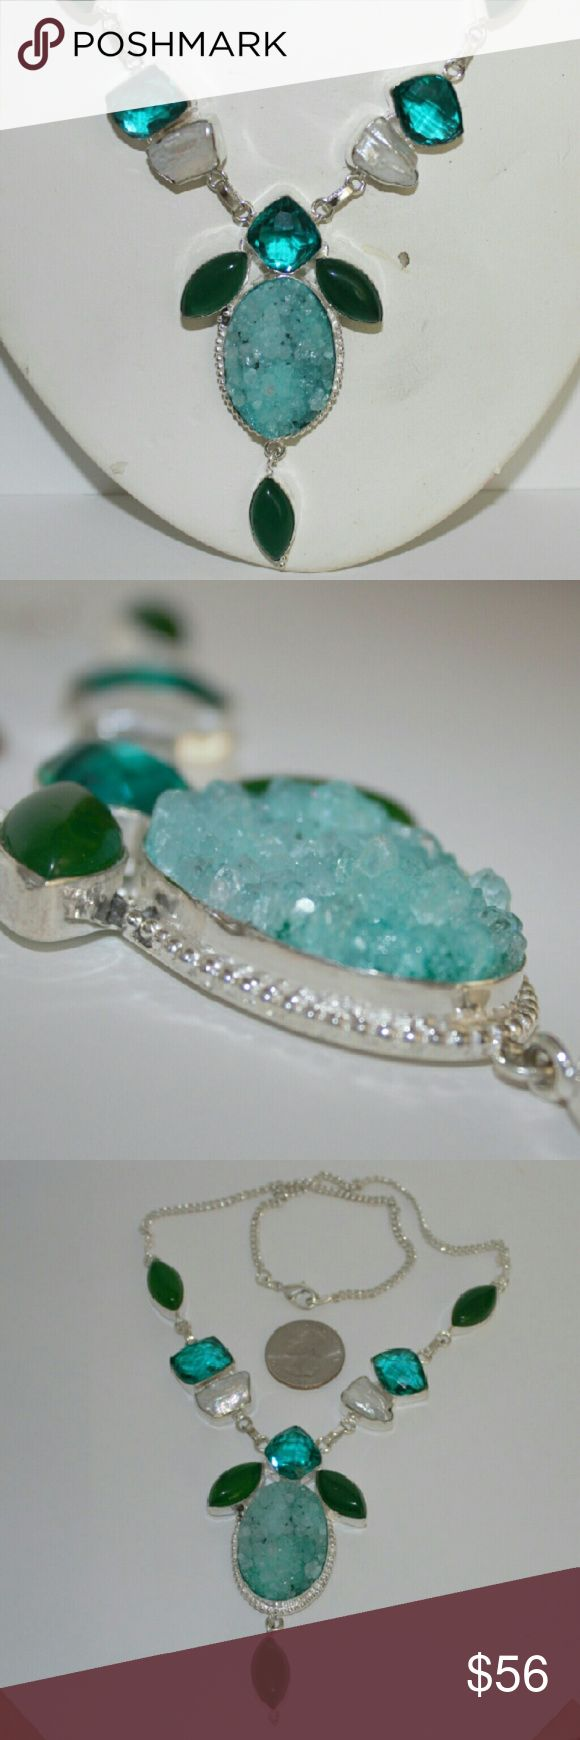 """Amazing blue Druzy statement necklace NWOT Incredible turquoise blue druzy pendant flanked by aquamarine and emerald stones. Biwa pearls ascend on the stunning mix of stones accenting the pendant. Nickel-free silver chain with lobster clasp. Necklace is 19"""" and pendant hangs an additional 3"""" at base. Turn heads where ever you go with this statement necklace. Imported from India. Bundle pricing available. Jewelry Necklaces"""